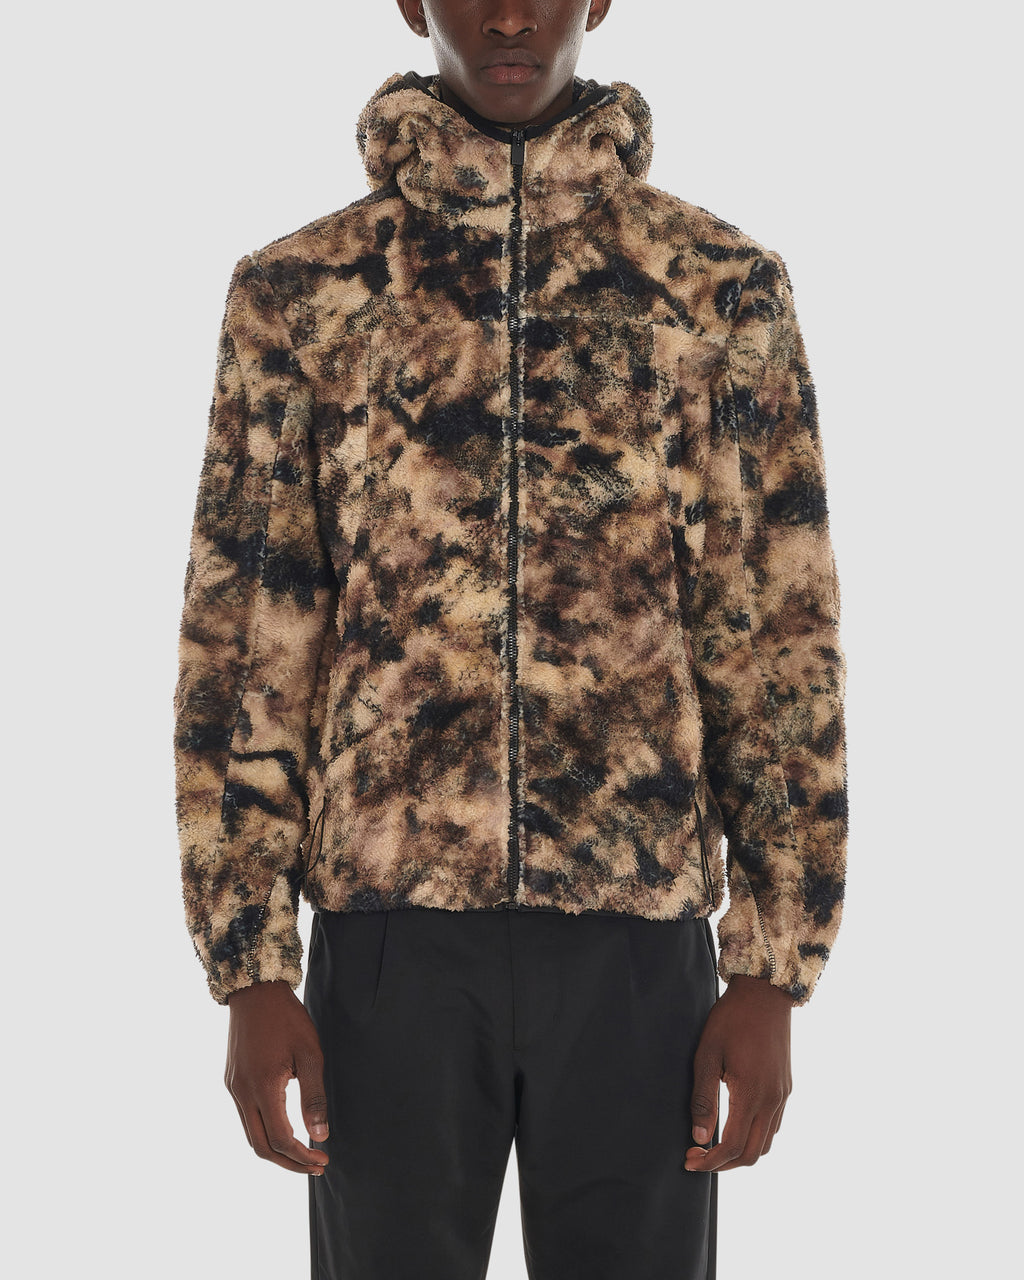 MYLES ZIP UP POLAR FLEECE PRE-ORDER